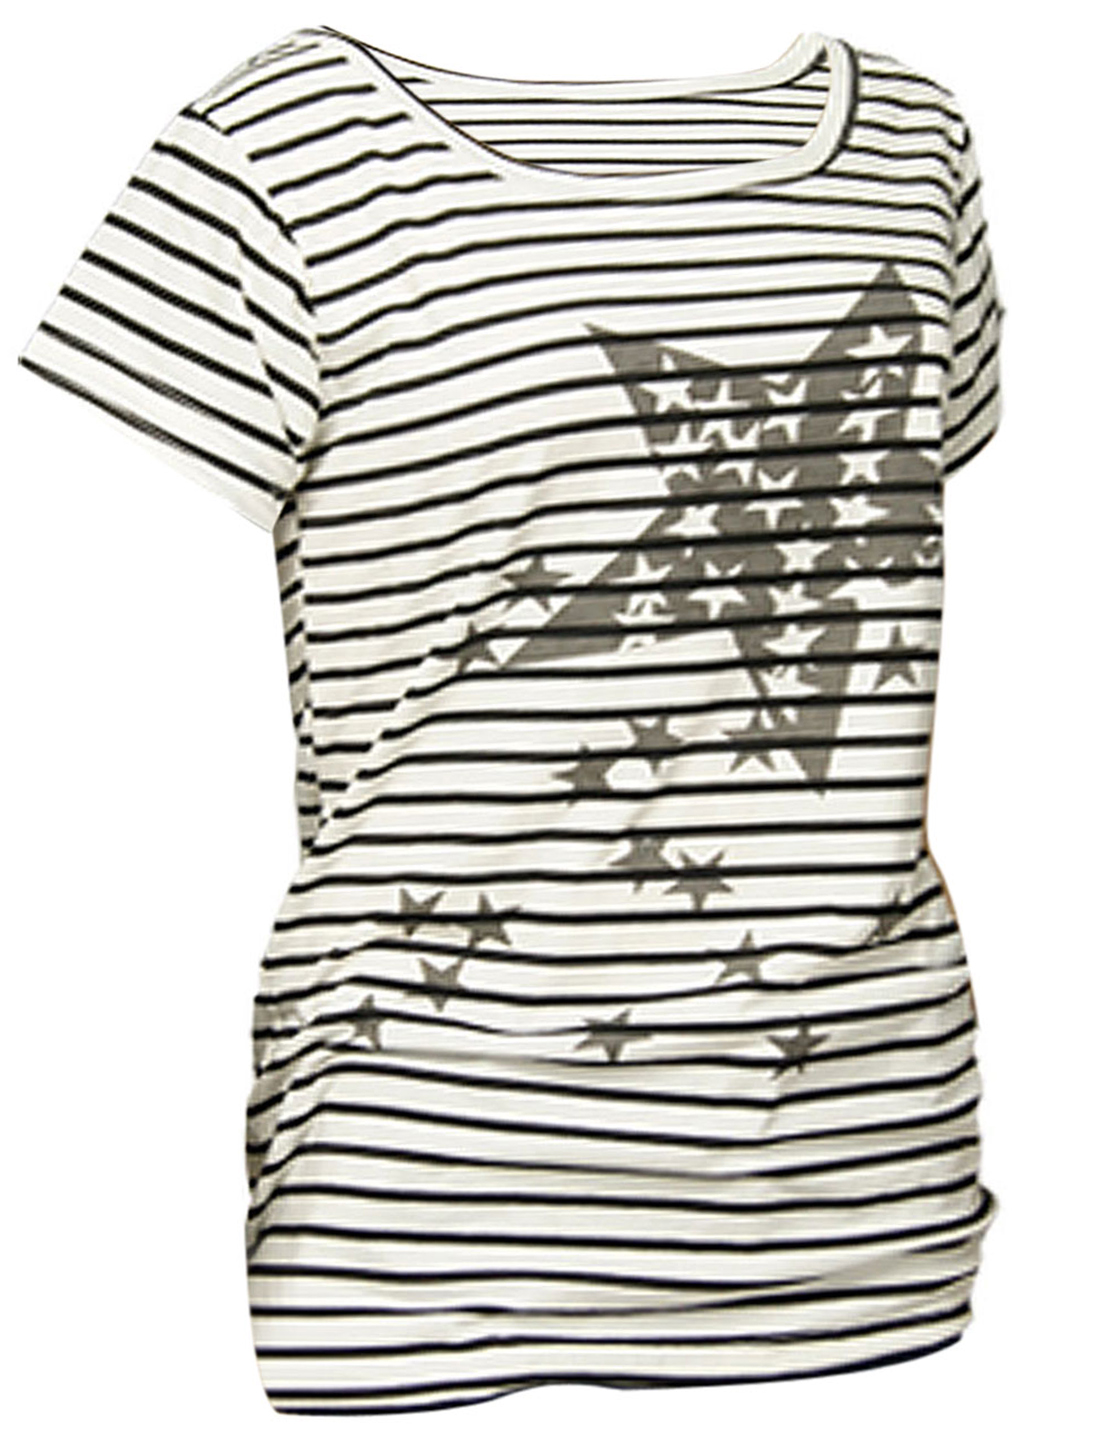 Black White Striped Round Neck Star Print Shirt S for Lady